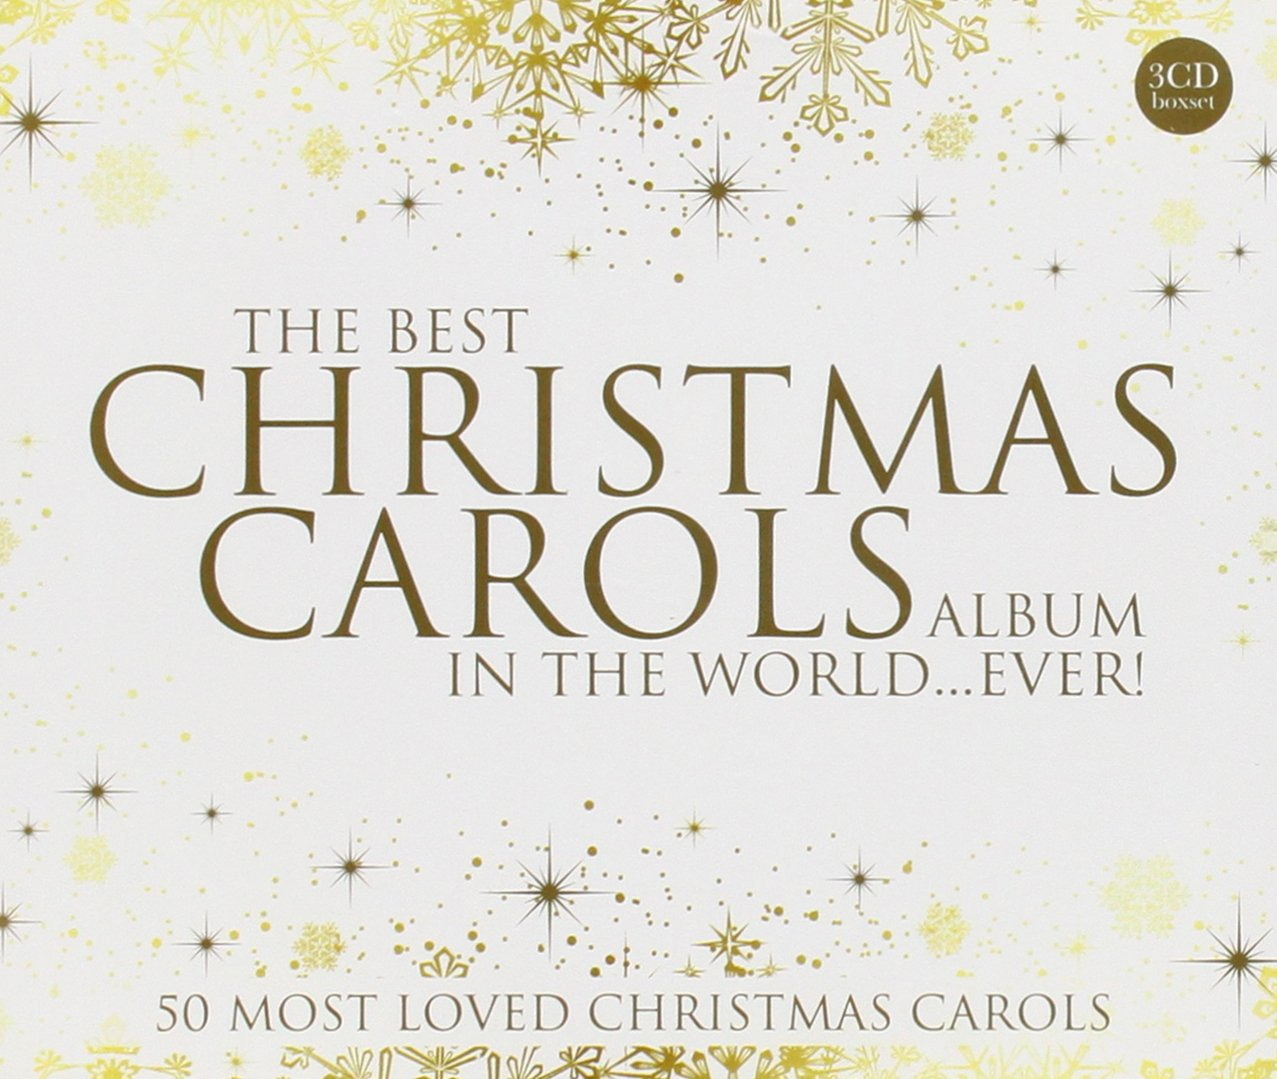 The Best Christmas Carols Album In The World...Ever!: Amazon.co.uk ...